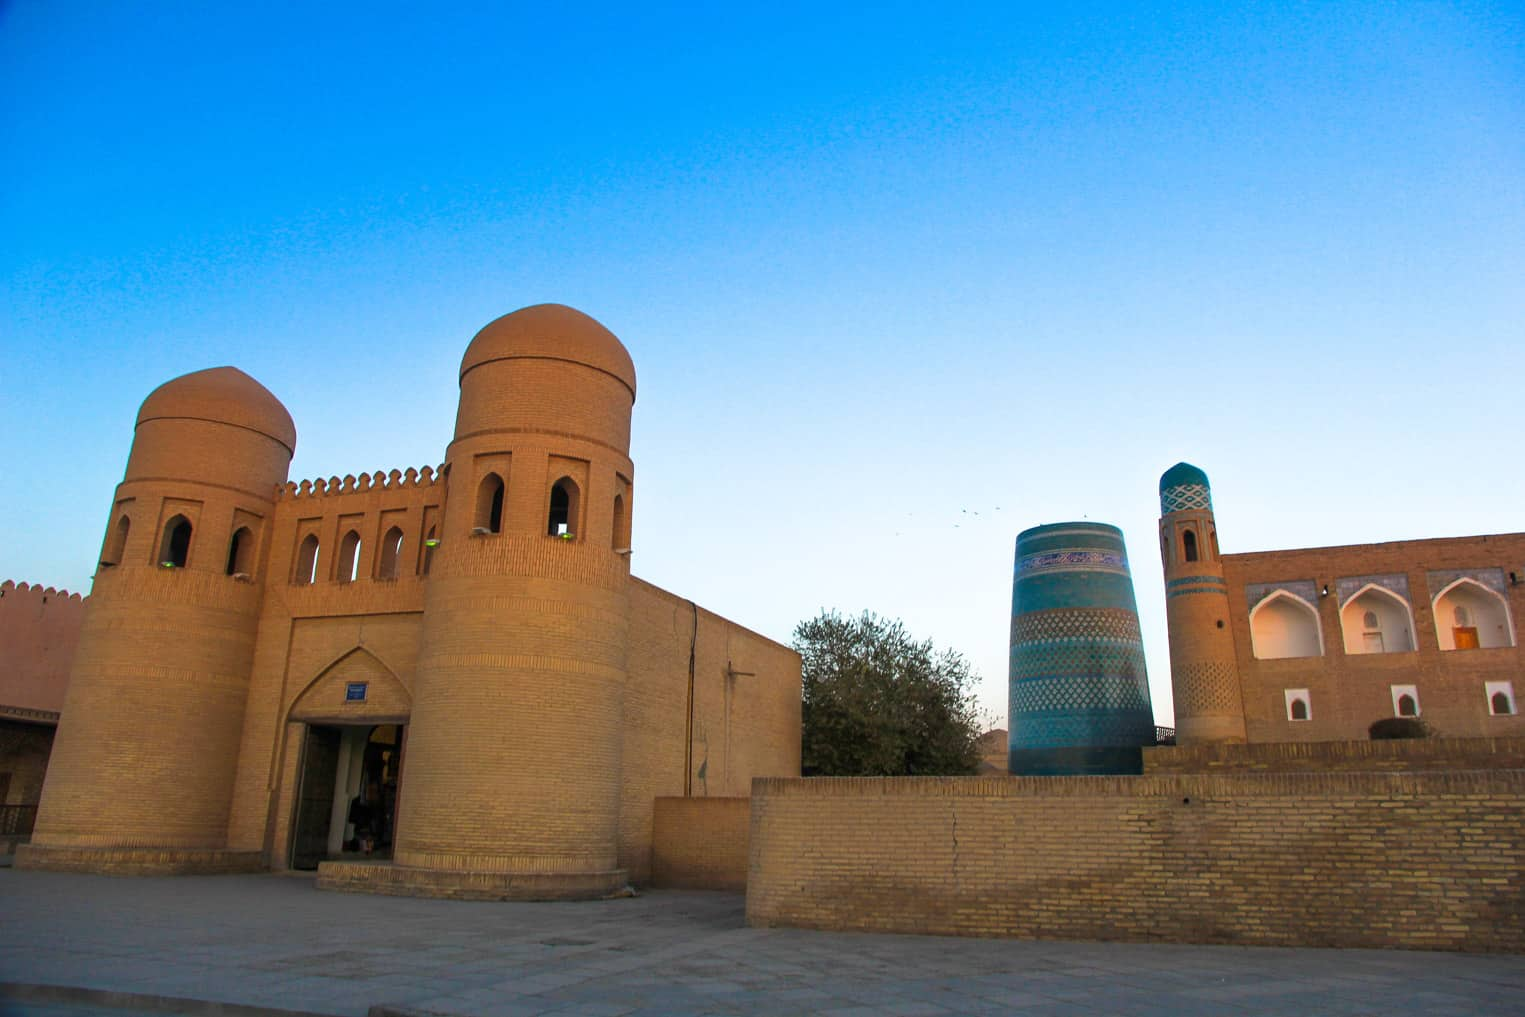 The main entrance to the old town of Khiva. Uzbekistan